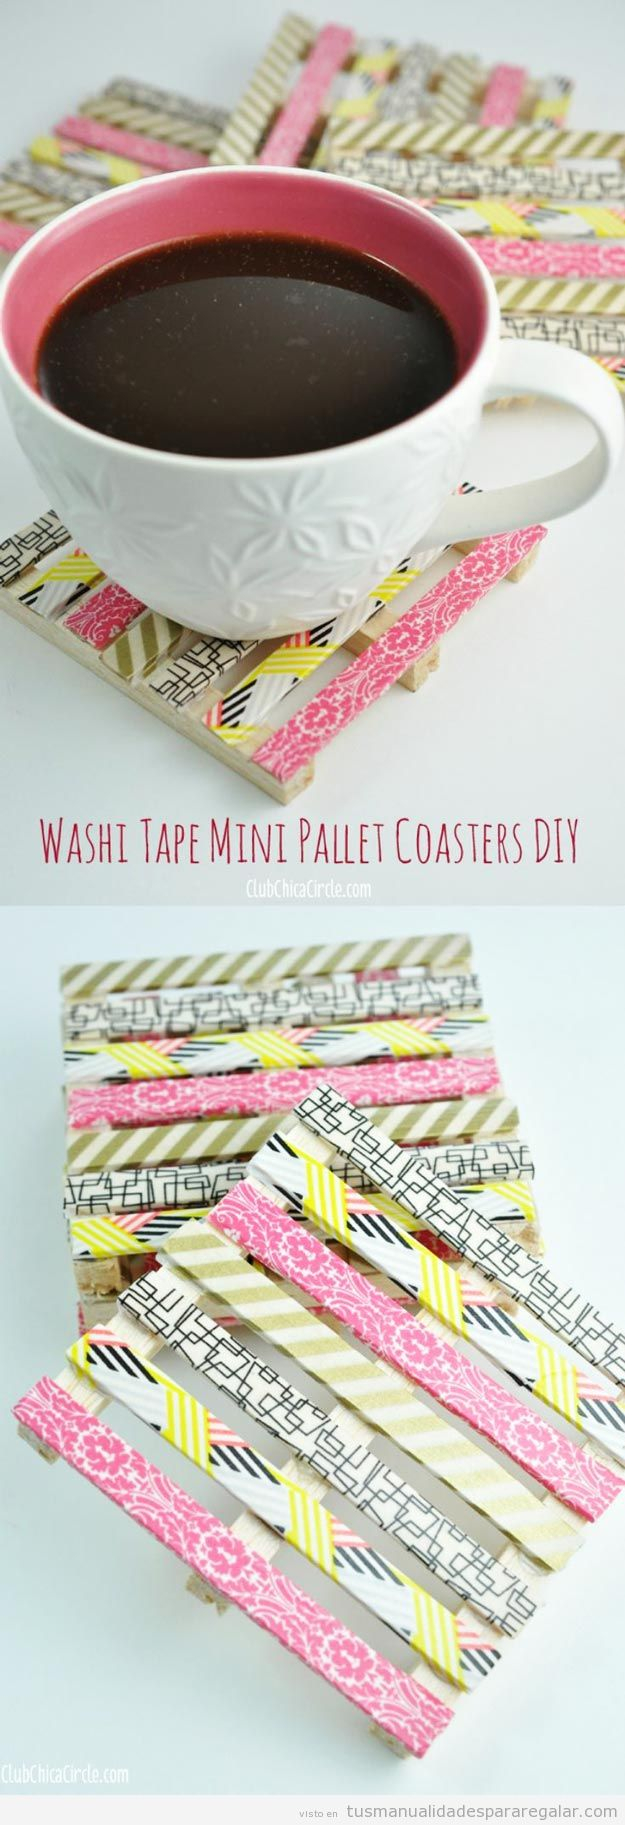 Posavasos DIy hecho de mini palets y washi tape